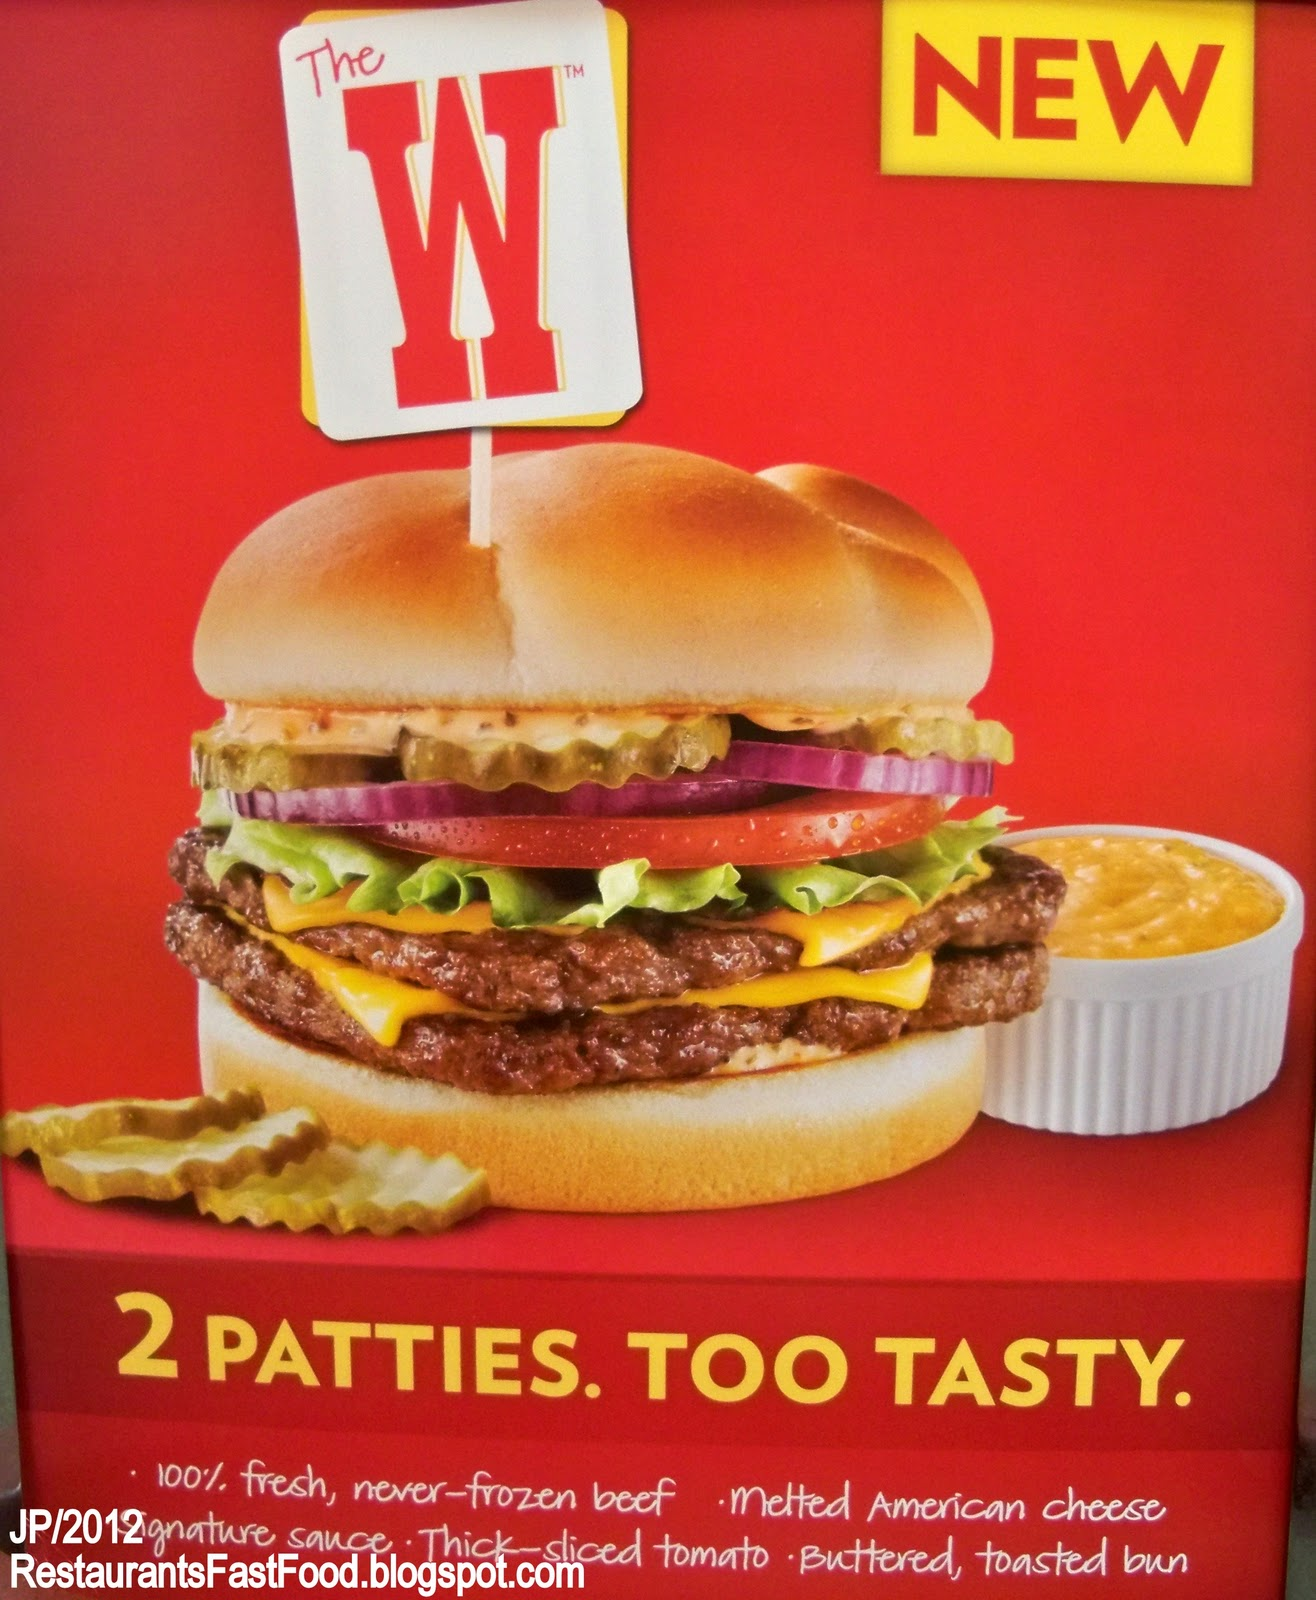 Taco Bell Lets Basketball Fans Live Mas With 8315104 additionally Wendys Auburn Alabama Hiton Garden Dr I additionally Dunkin Donuts additionally Mcdonalds Panama City Florida W 23rd St as well Creative Pizza Advertising. on pizza hut billboard